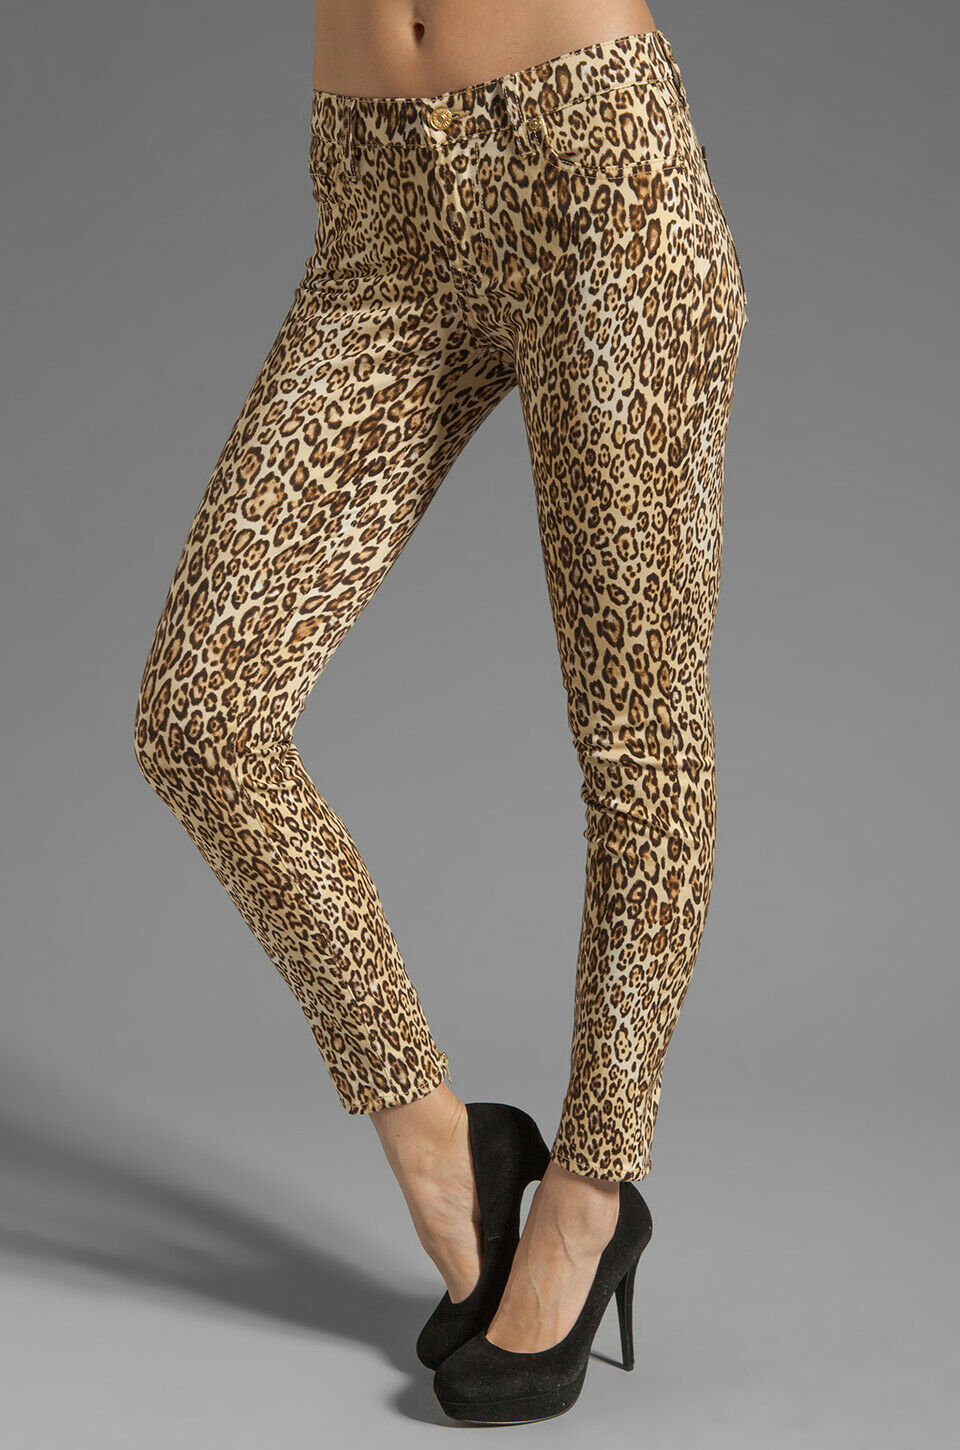 NEW 7 FOR ALL MANKIND  THE SLIM CIGARETTE JEANS IN CHEETAH PRINT SZ 23